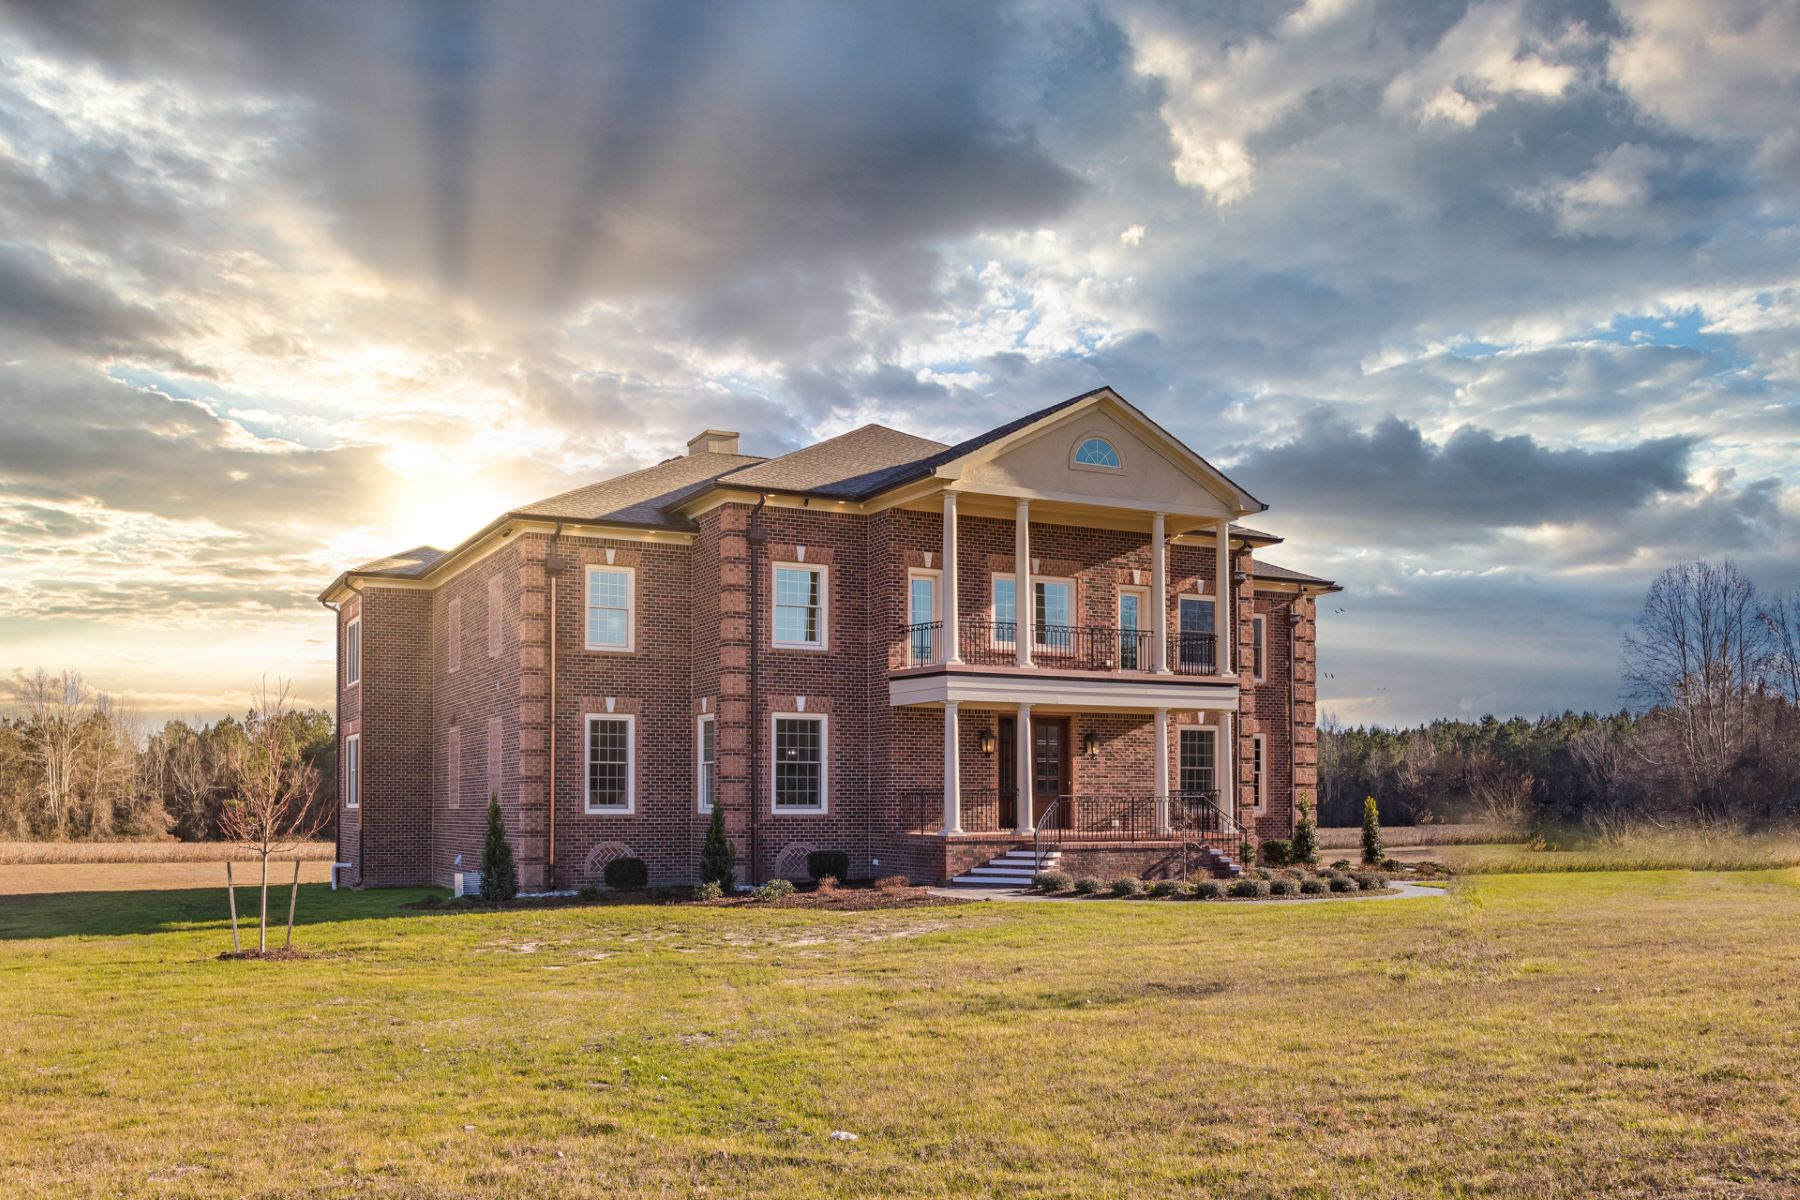 Single Family Homes for Active at South Suffolk 4250 Longstreet Lane Suffolk, Virginia 23437 United States